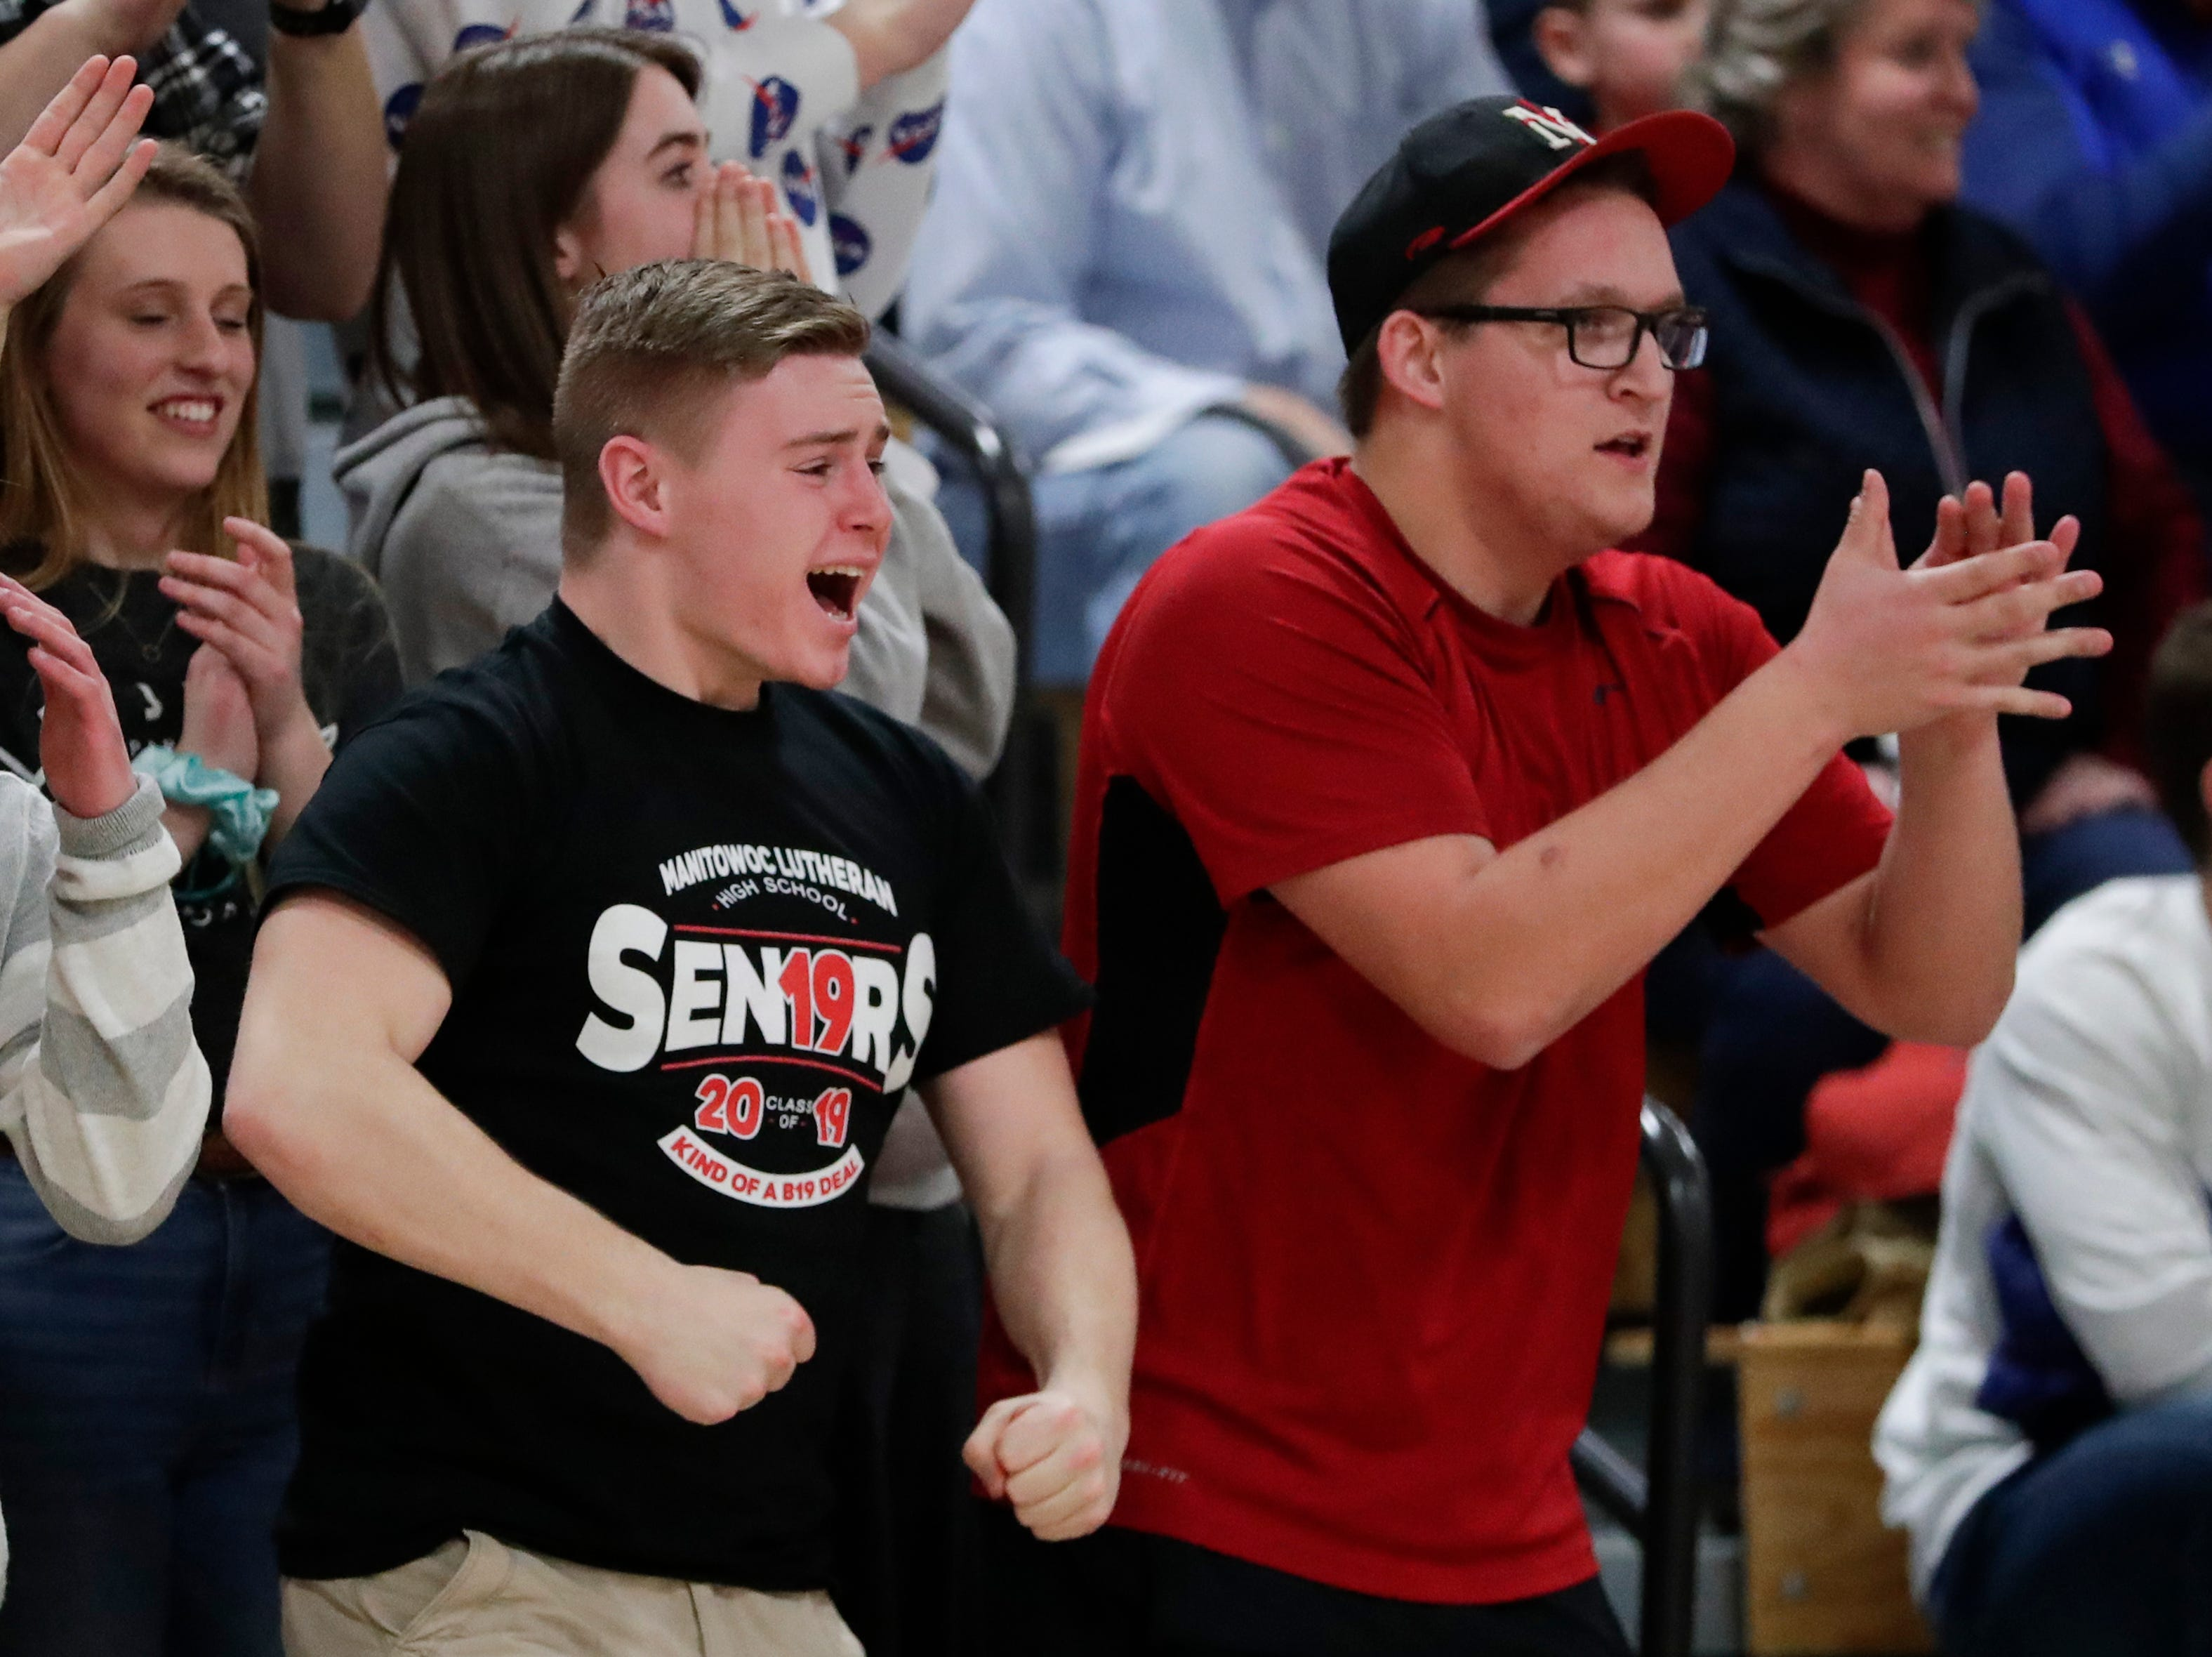 Manitowoc Lutheran's student section cheers as the Lancers lessen the Jets' lead during a WIAA Division 4 regional semifinal game against Roncalli at Roncalli High School Friday, March 1, 2019, in Manitowoc, Wis. Joshua Clark/USA TODAY NETWORK-Wisconsin